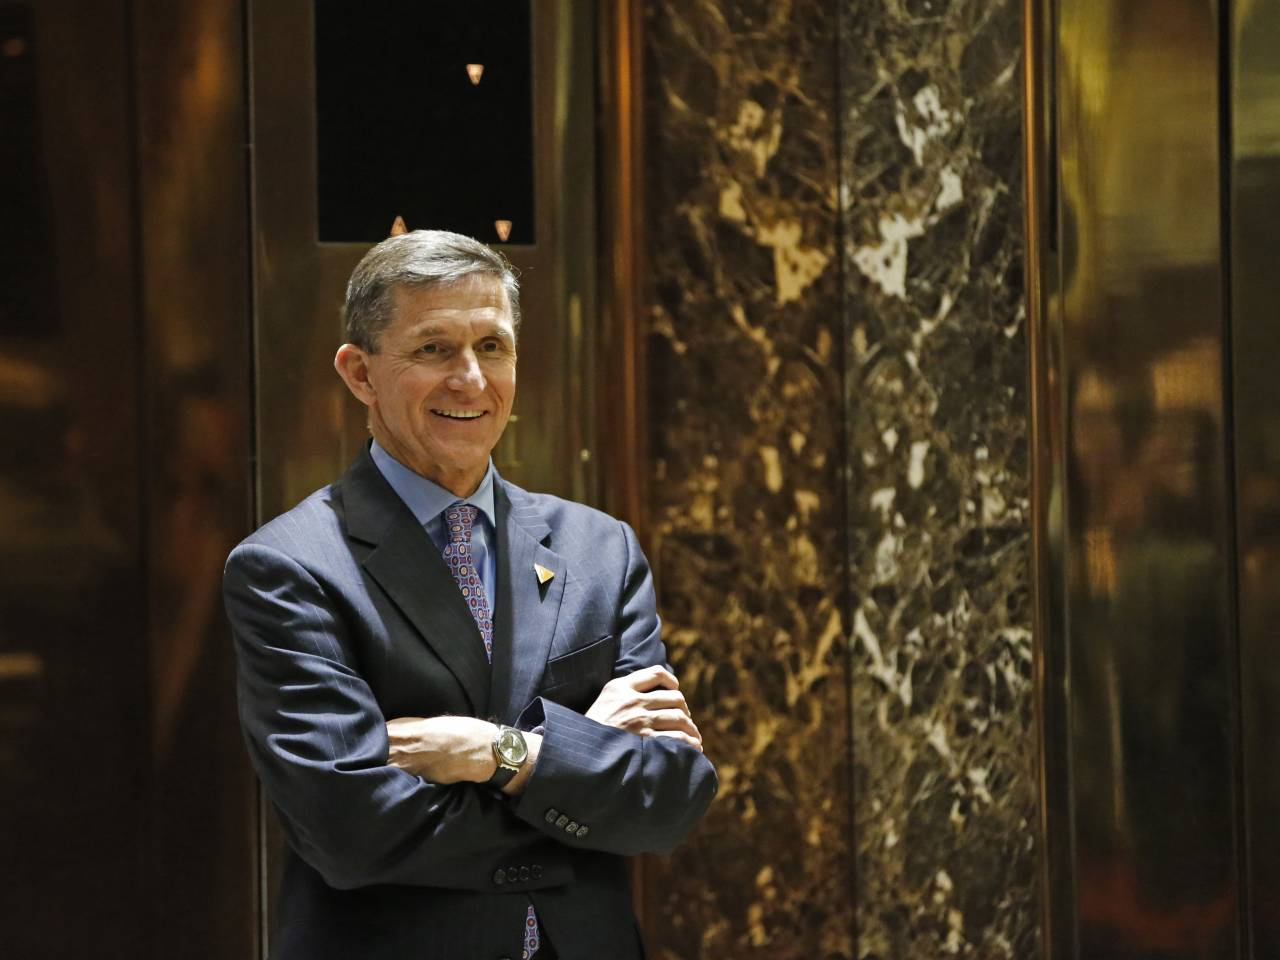 National Security Advisor Michael Flynn's Ties to Russia Are Under Investigation